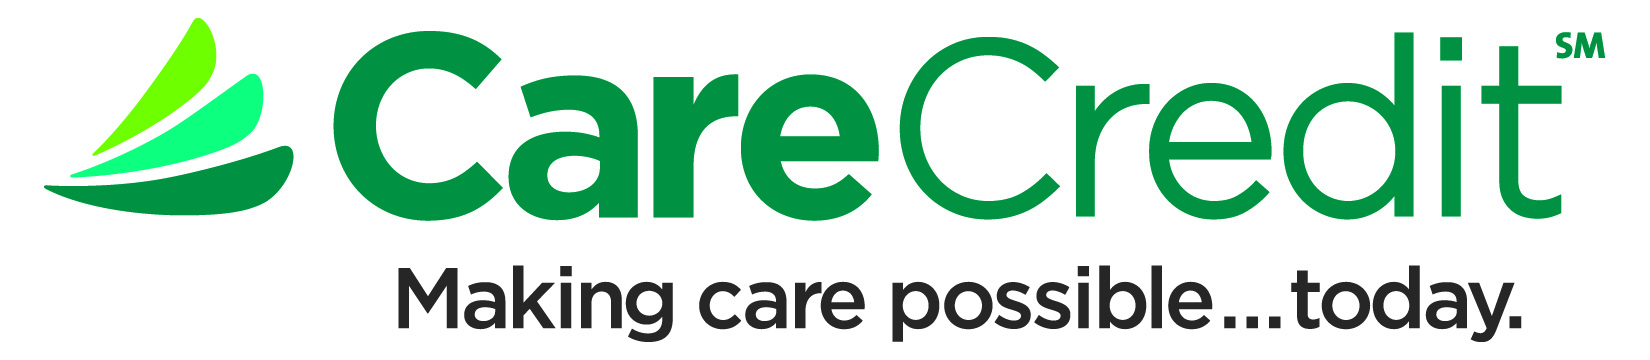 CareCredit Logo Finances